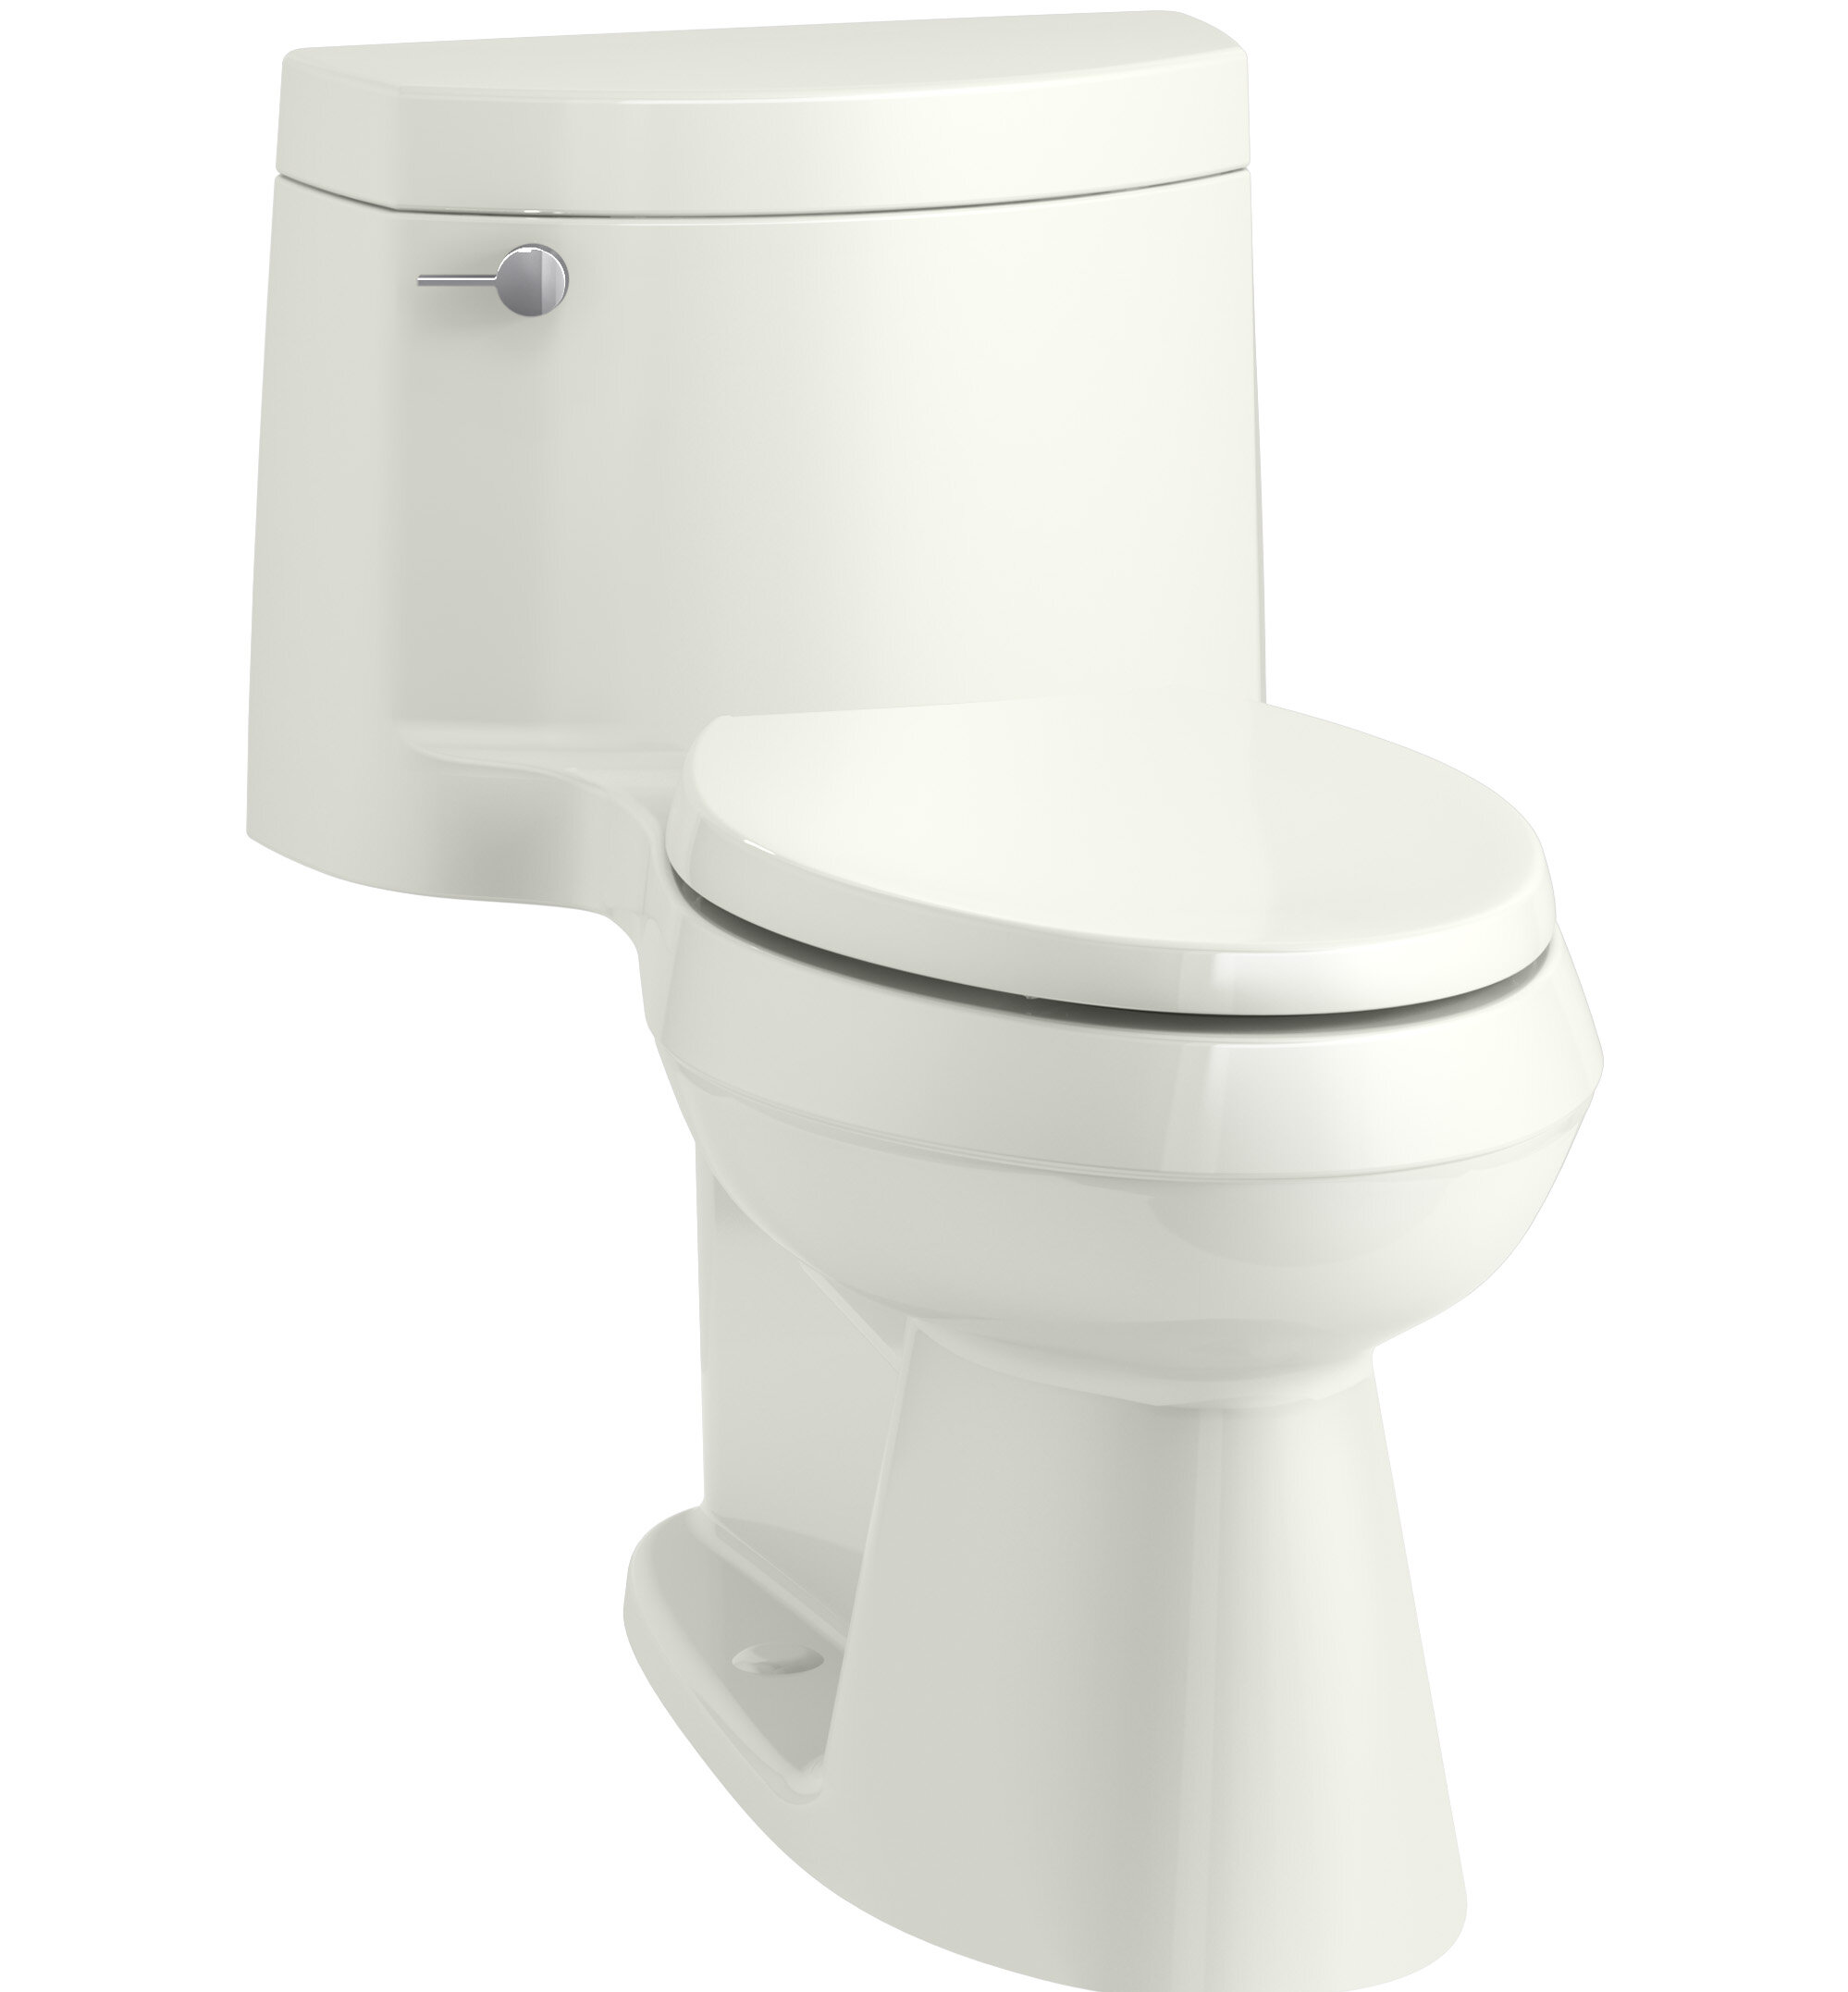 Kohler Cimarron Comfort Height One-Piece Elongated 1.28 GPF Toilet ...